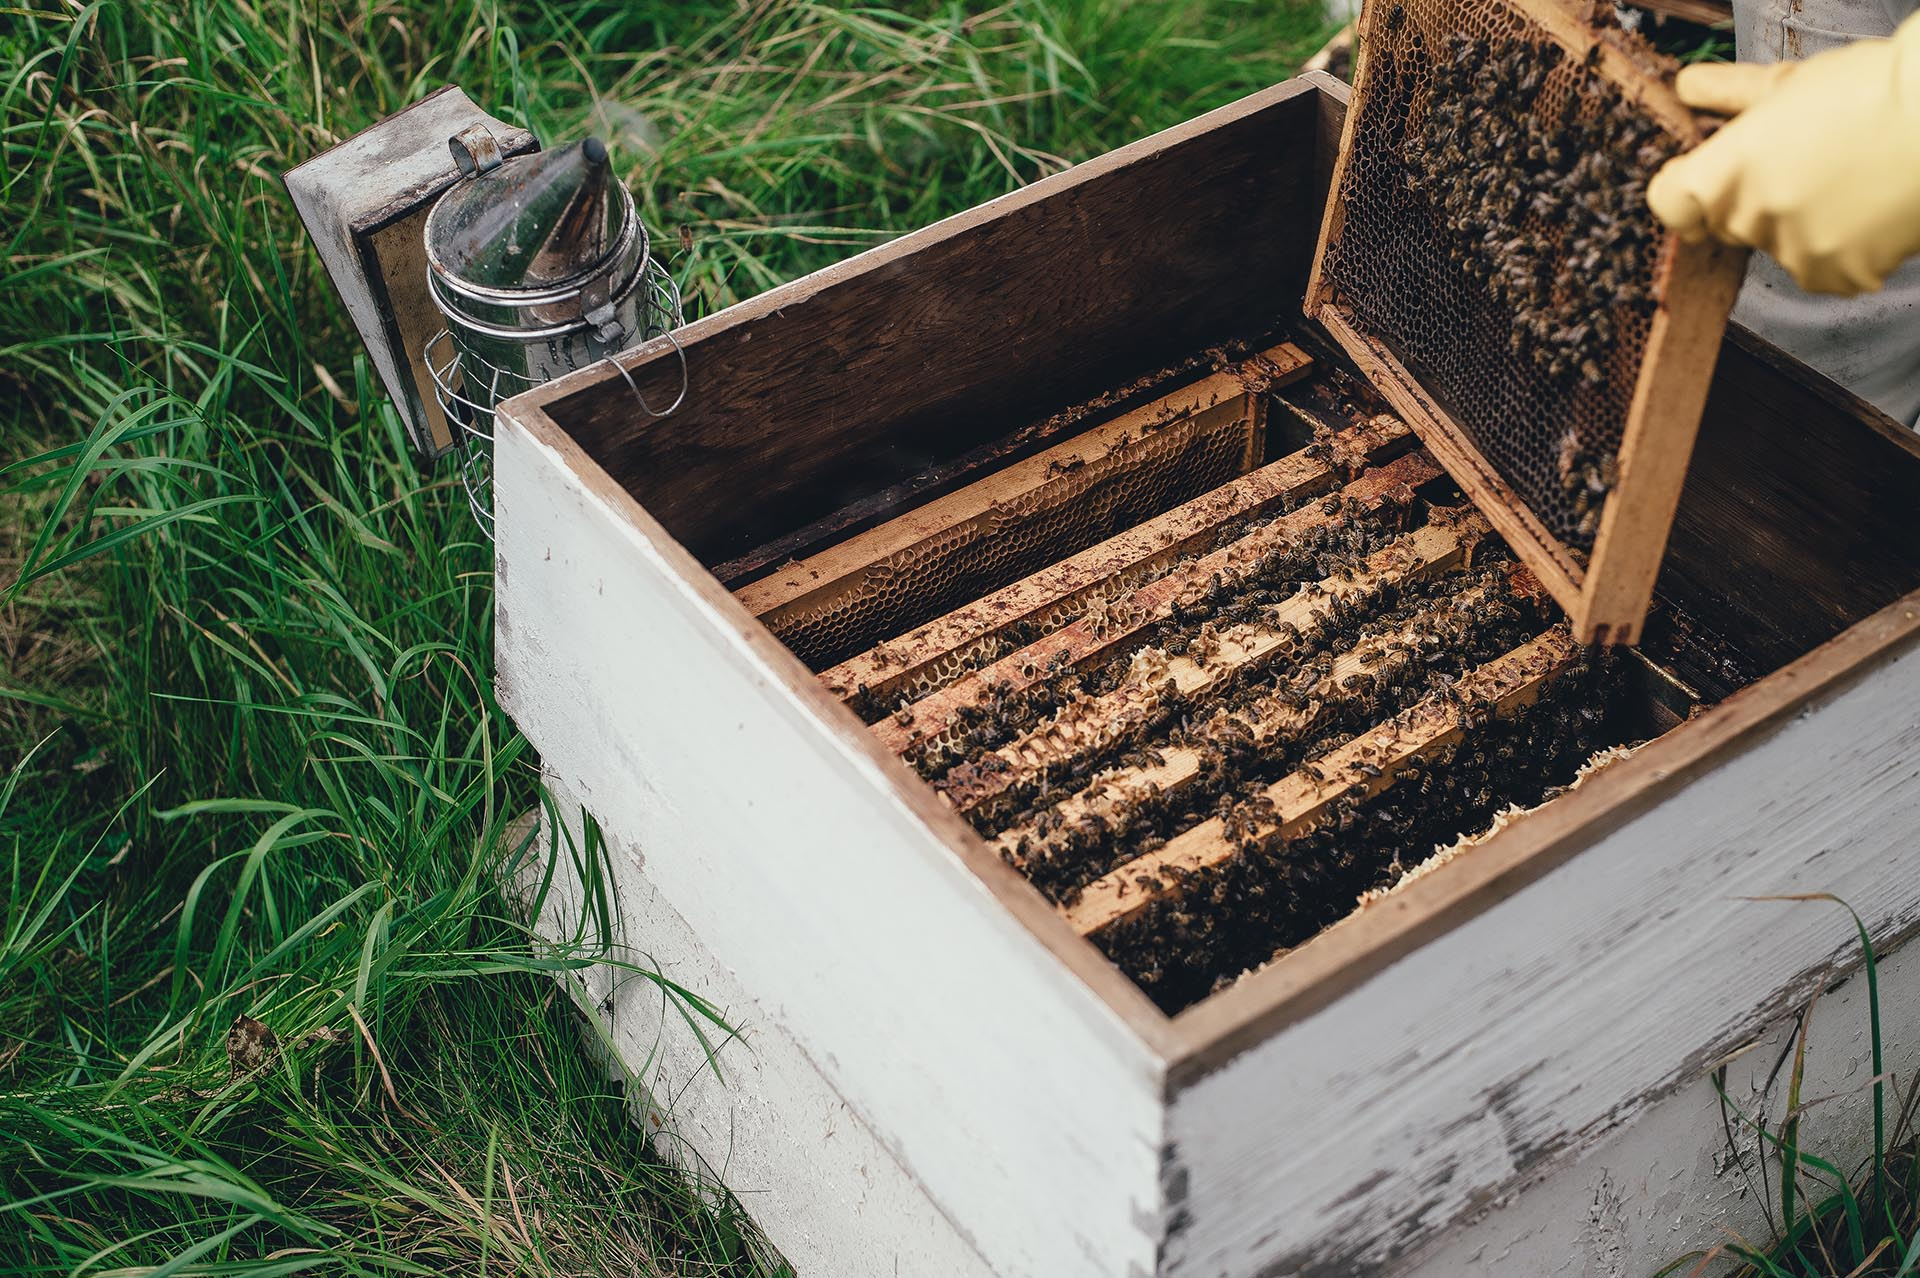 Beekeeper tending to a white wooden bee hive